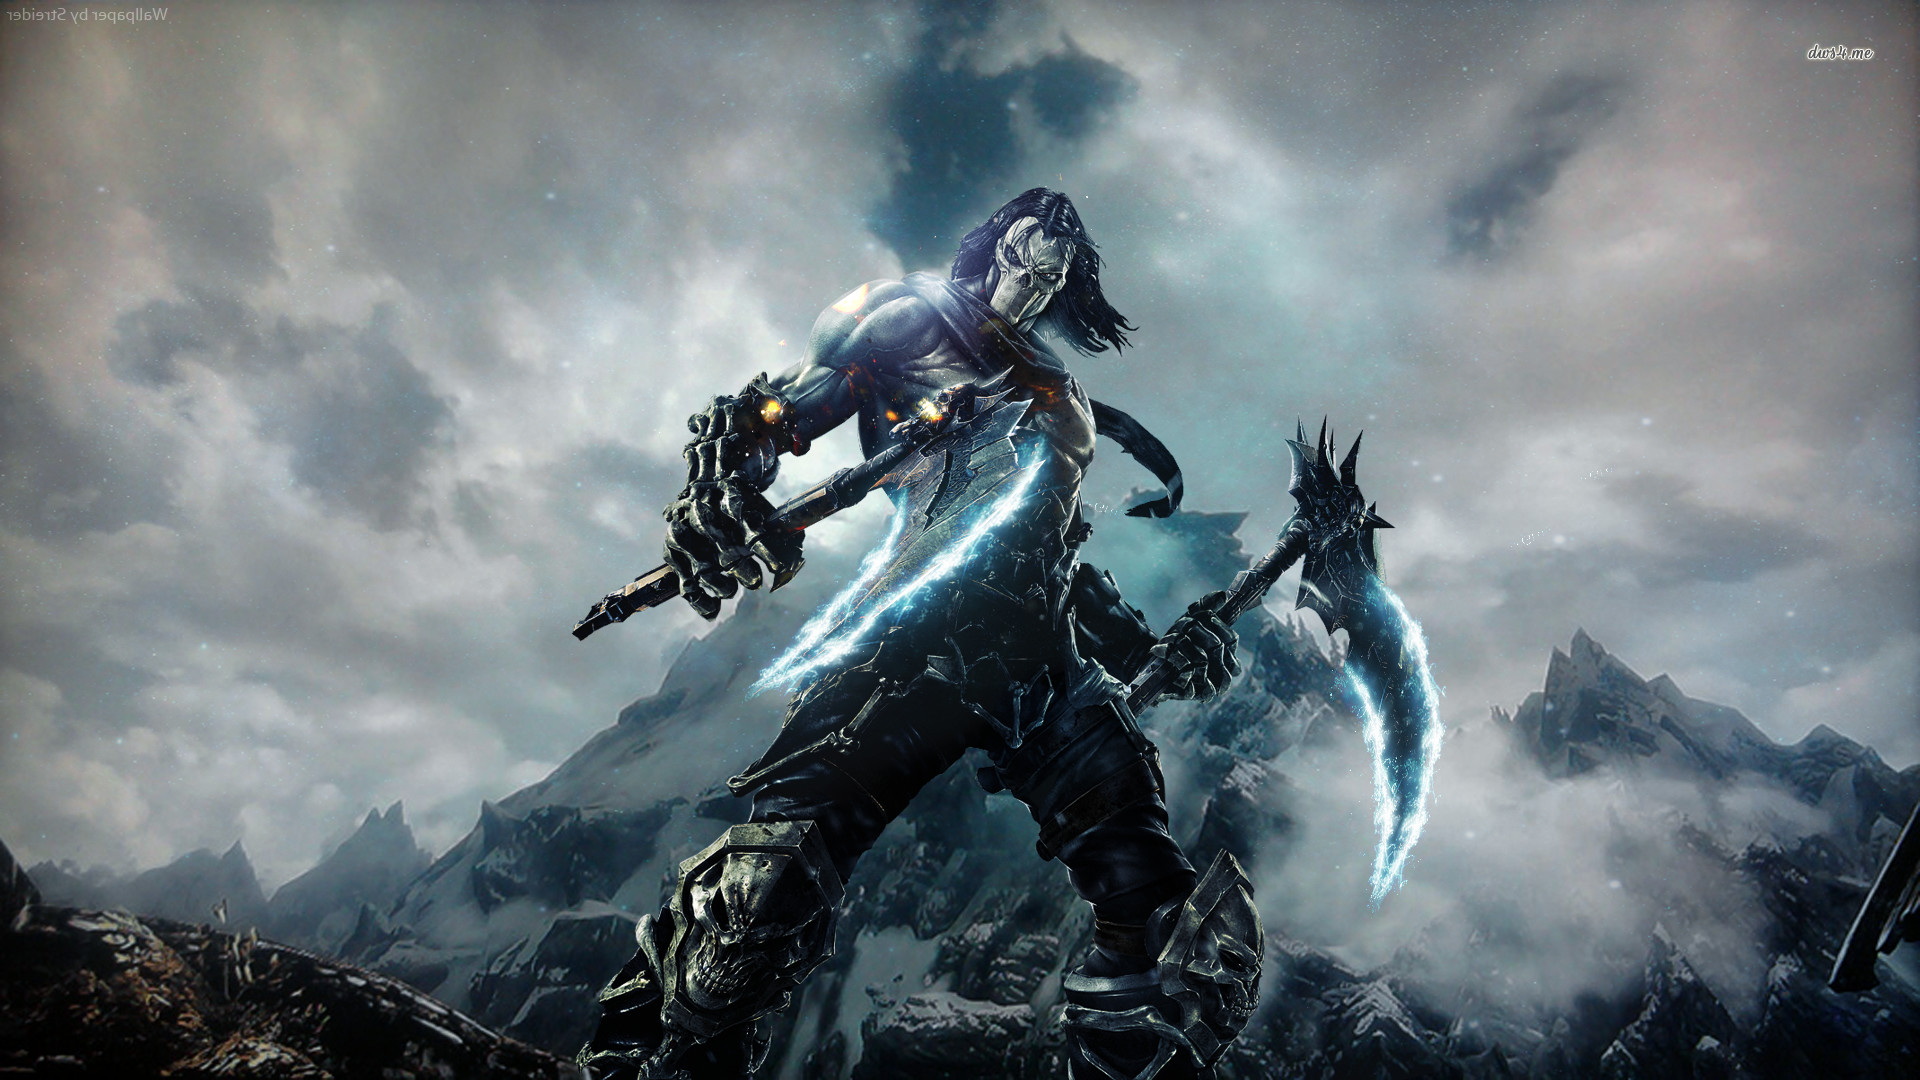 Darksiders War Wallpaper By: Darksiders Four Horsemen Wallpaper (85+ Images